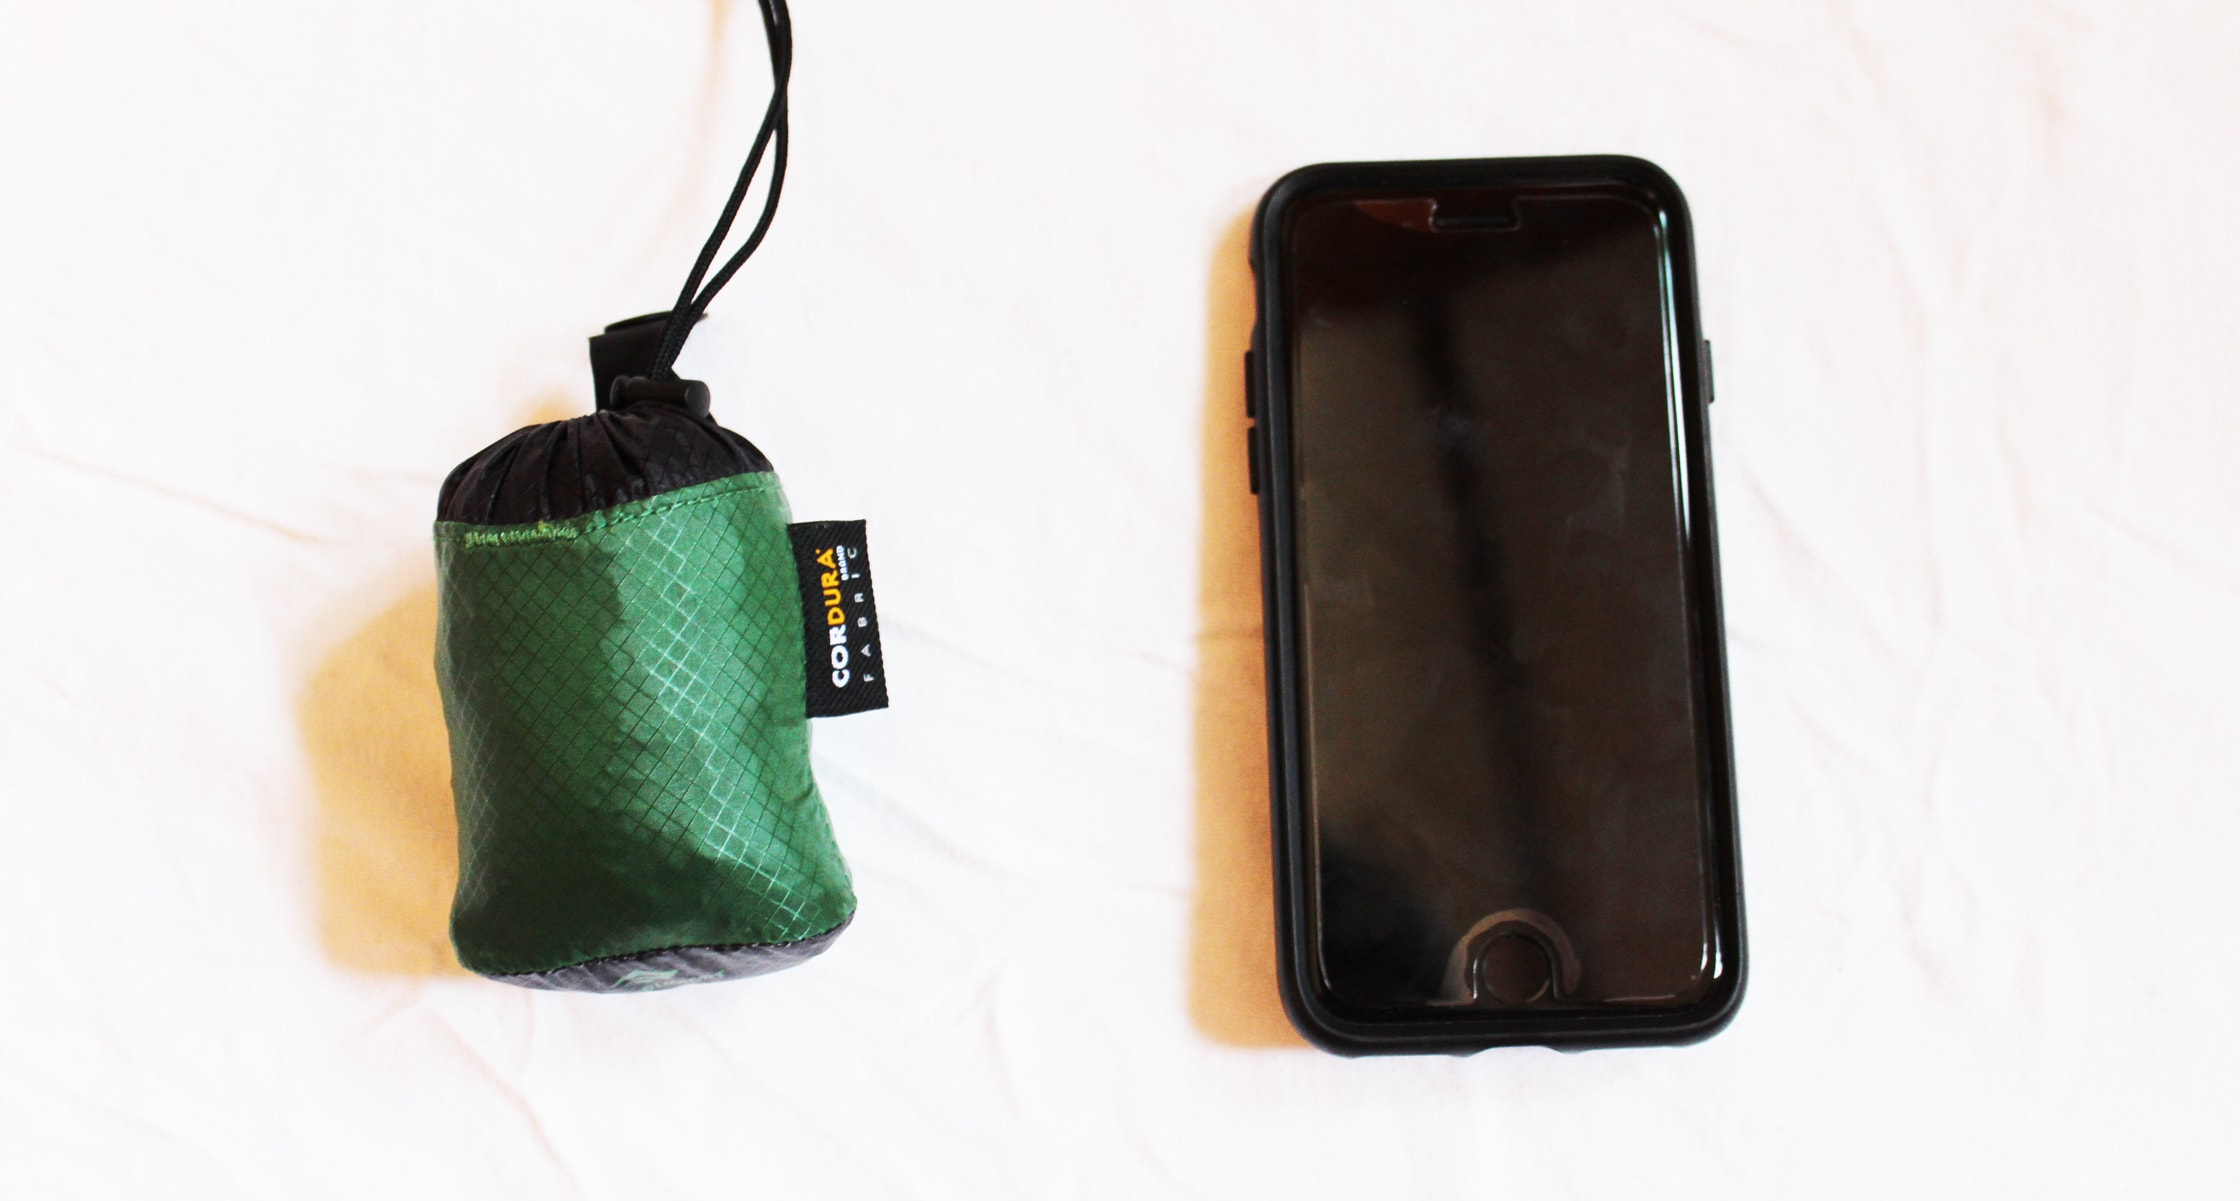 Sea to Summit Ultra-Sil Day Pack compressed size compared to iPhone 6